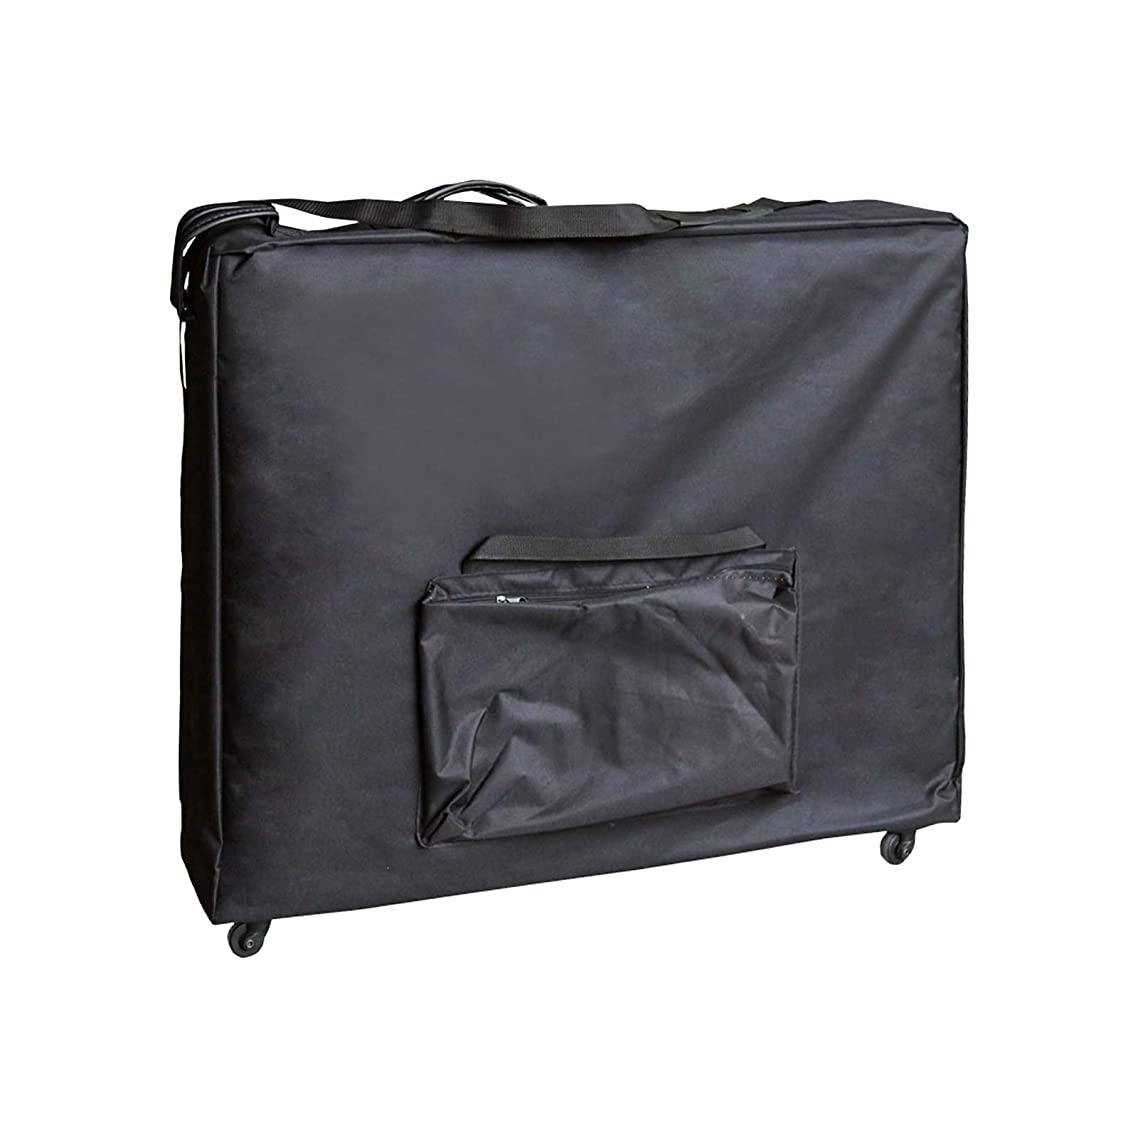 Artechworks Wheeled Massage Table Carrying Case,Bag with Wheels for 28